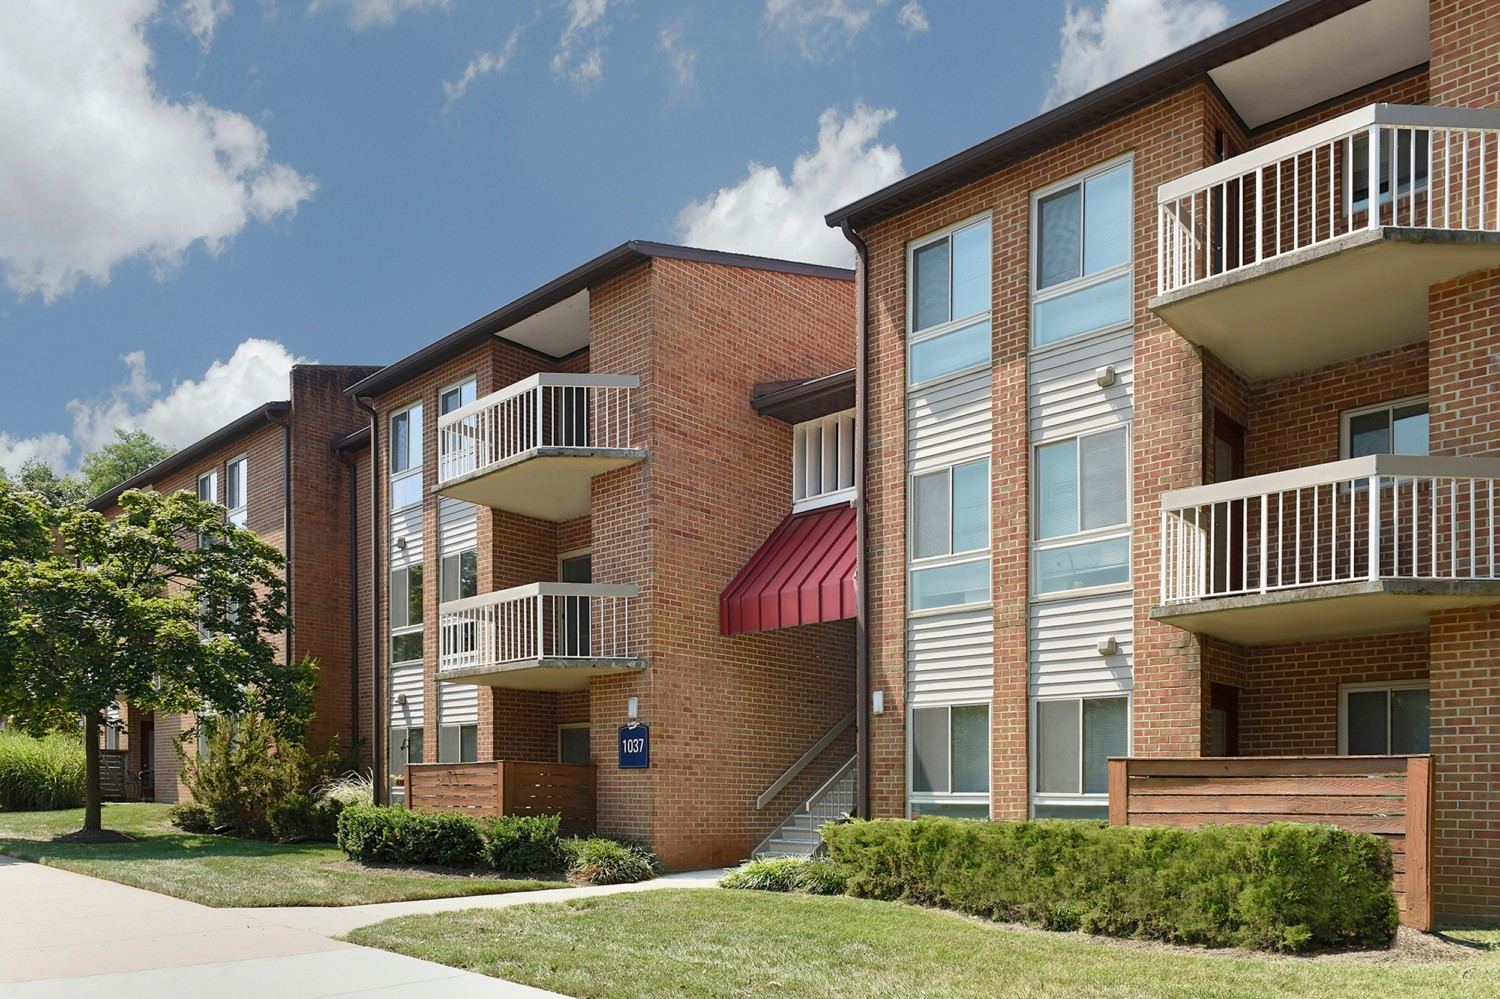 21 Local Apartment Communities Owned and Managed by CRC Earn